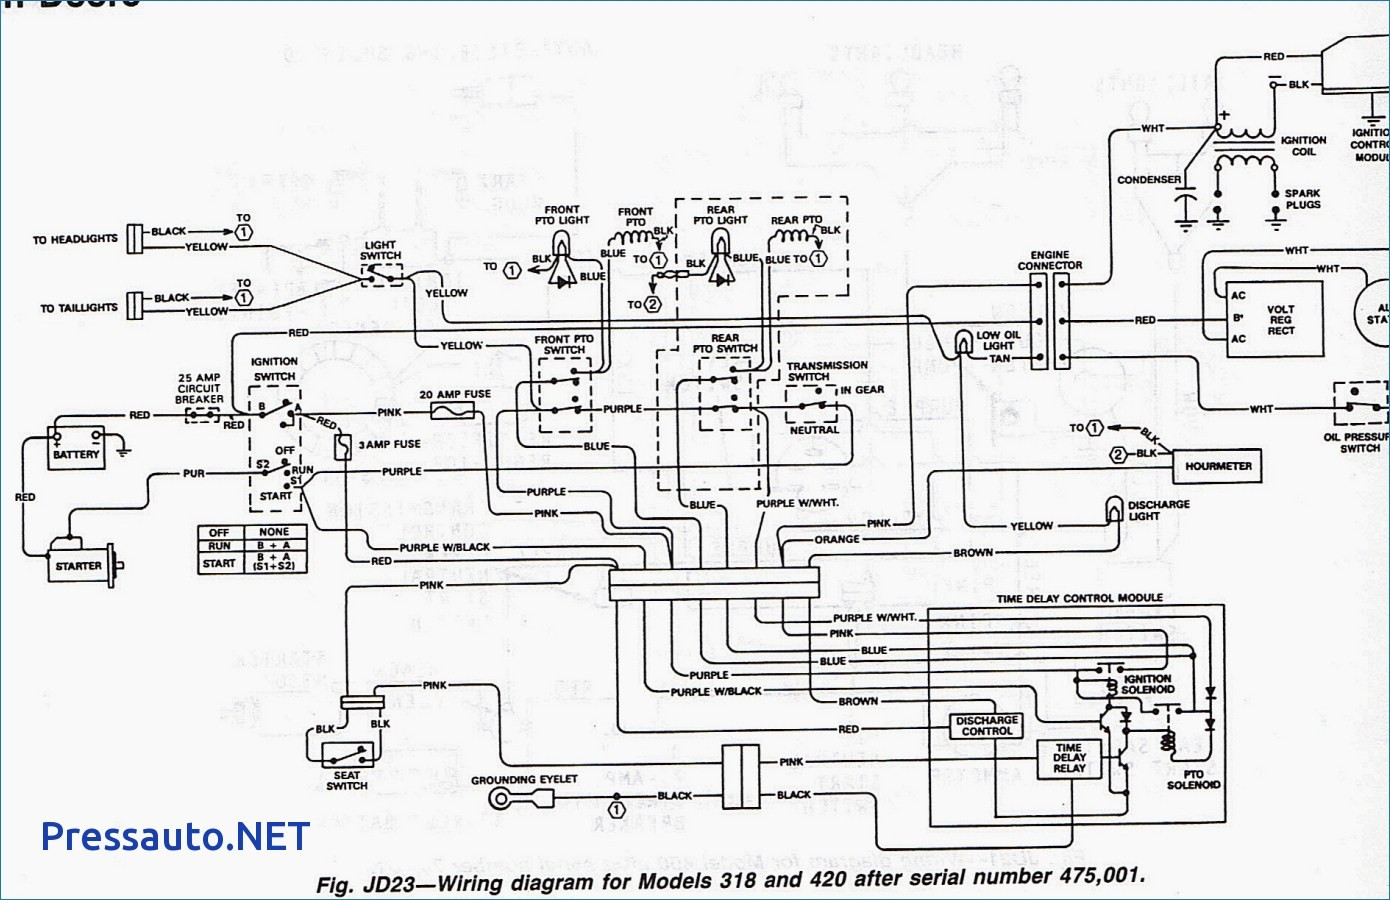 Raven Cable Wiring Diagrams | Wiring Liry on